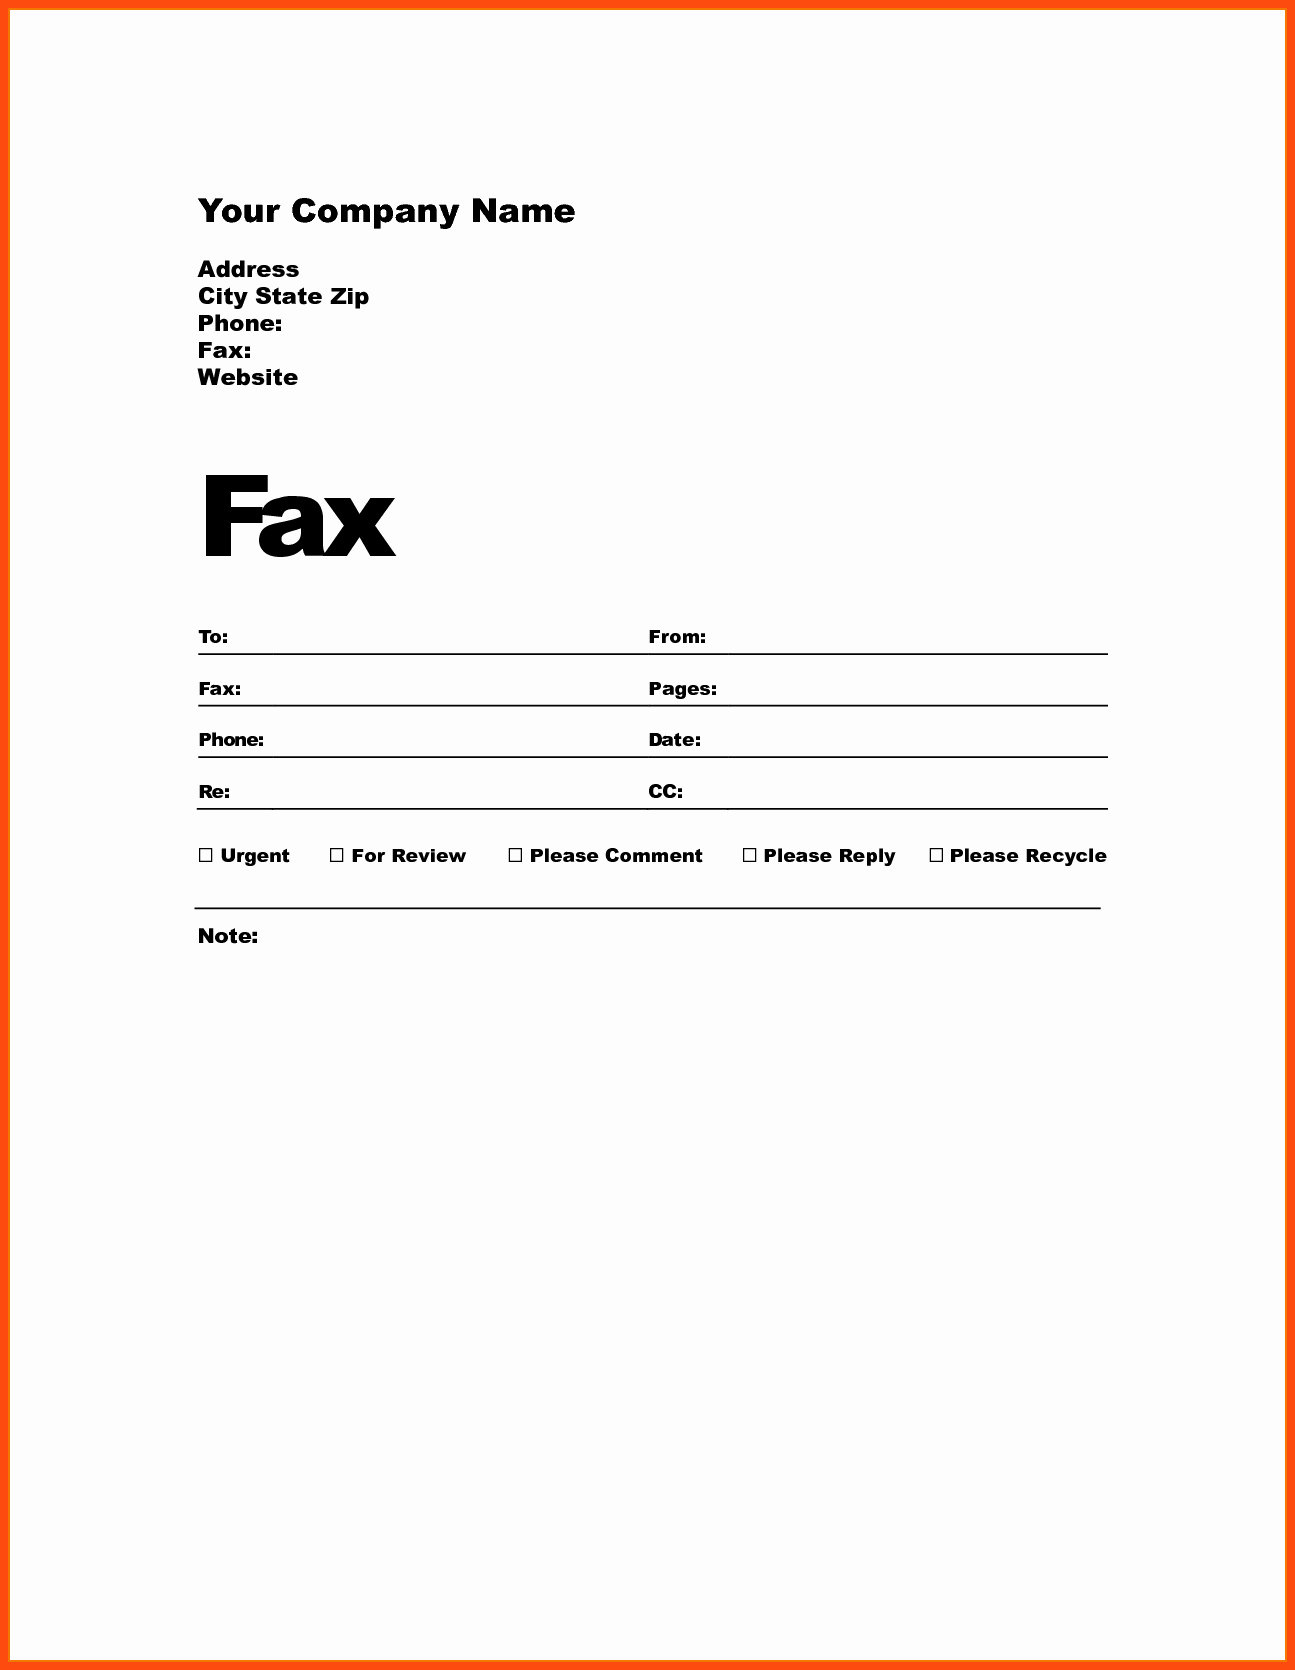 Sample Fax Cover Sheets Elegant Professional Fax Cover Sheet